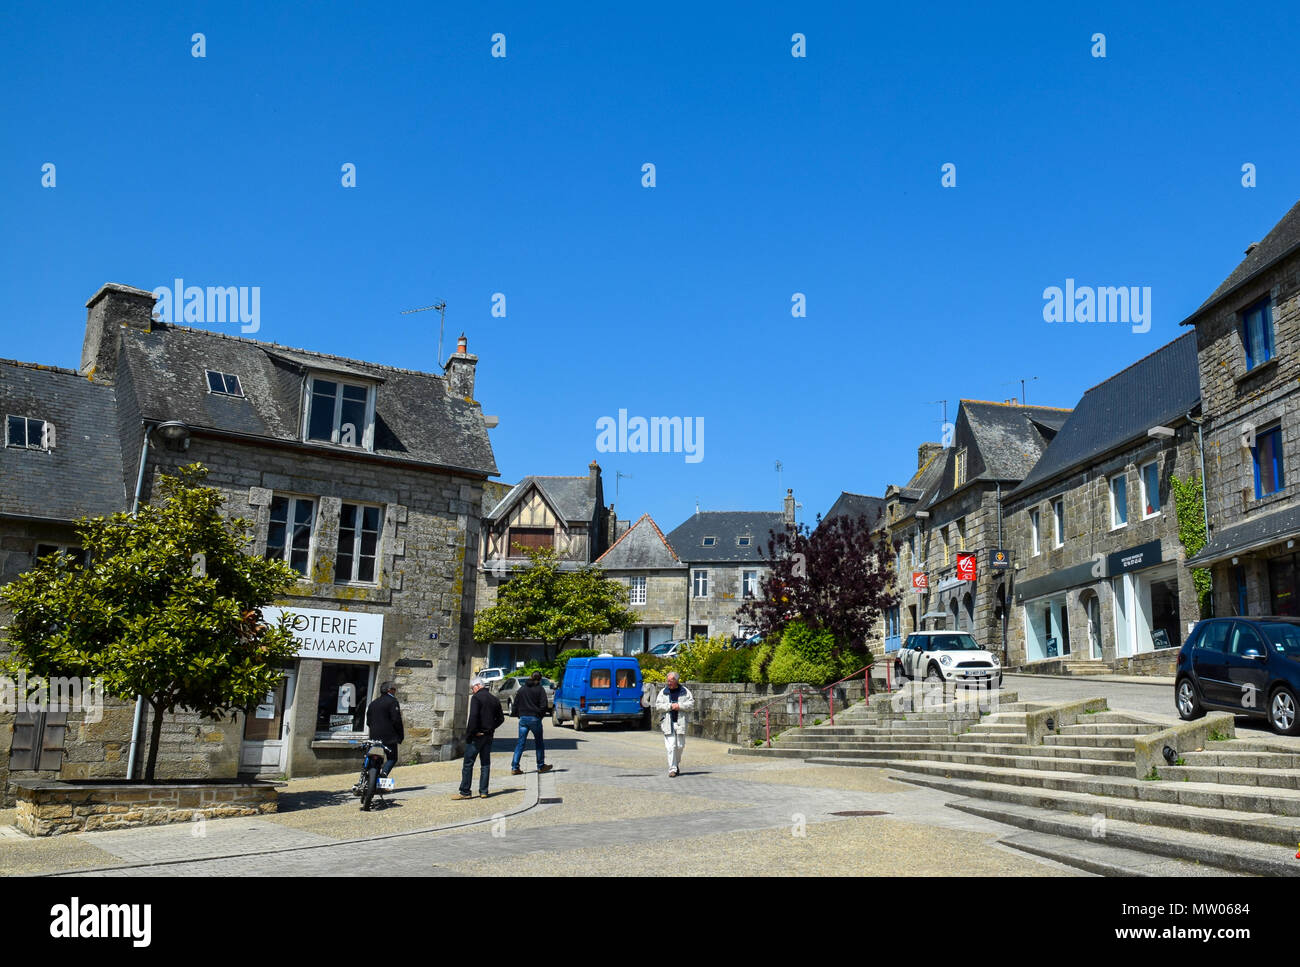 Clear and cloudless deep blue skies on a weekend in Rostrenan, Brittany, France. Stock Photo